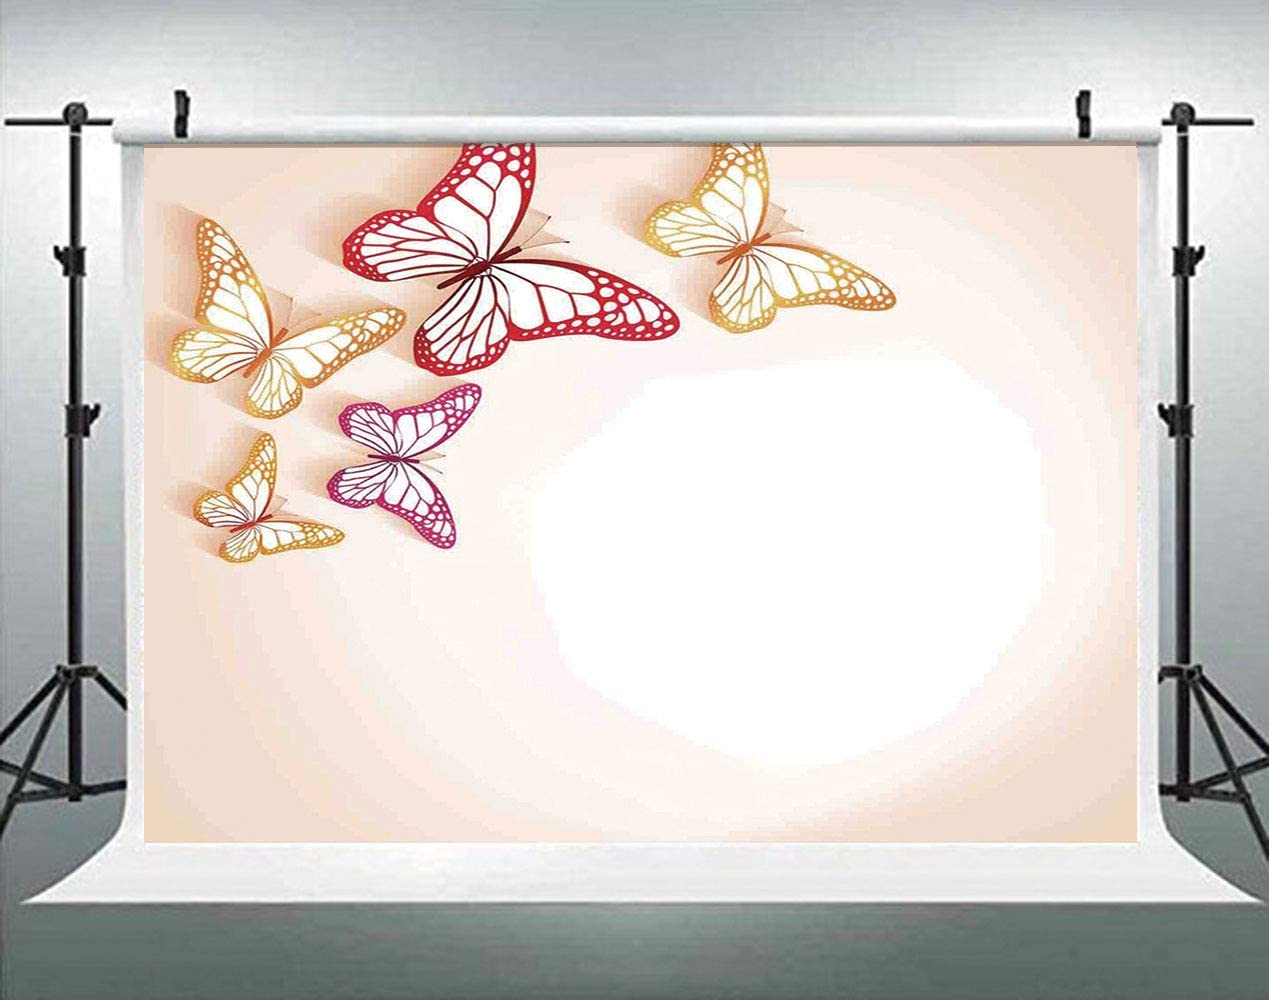 ALUONI 5x3ft,Pop Art Culture Graphic of Ancient with Angel Wings On Spiral Party Backdrop Photography Background Baby Adult Abstract Banner Cake Table Decoration Photo Booth AM000731